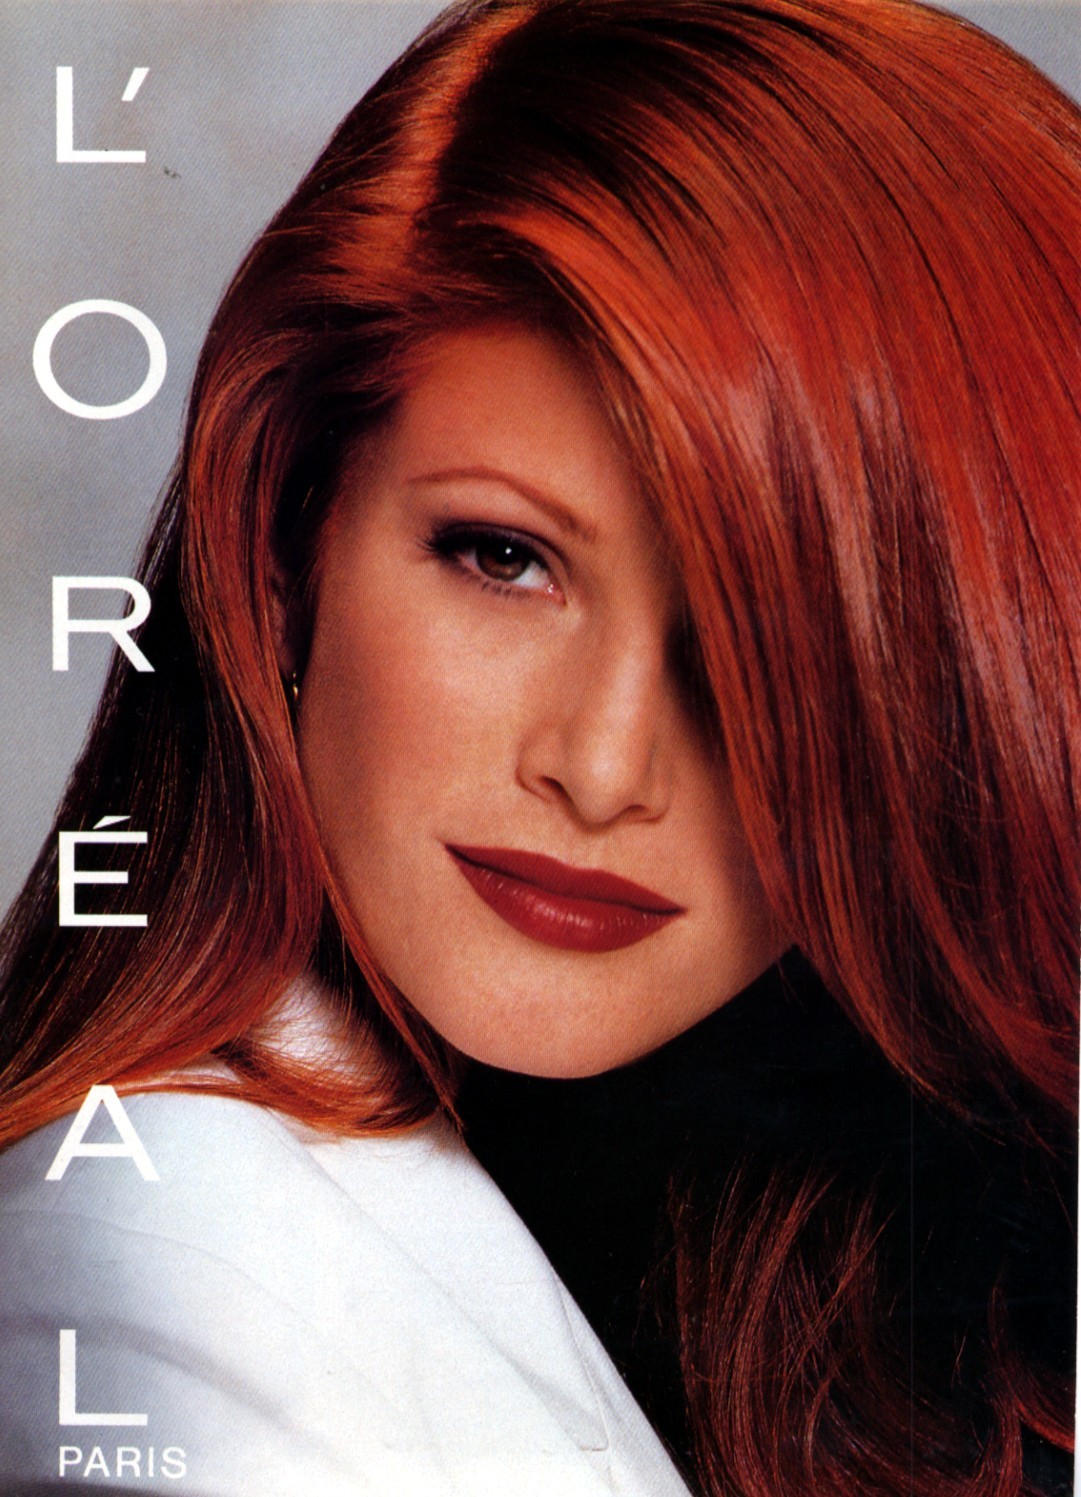 Angie everhart L'ore